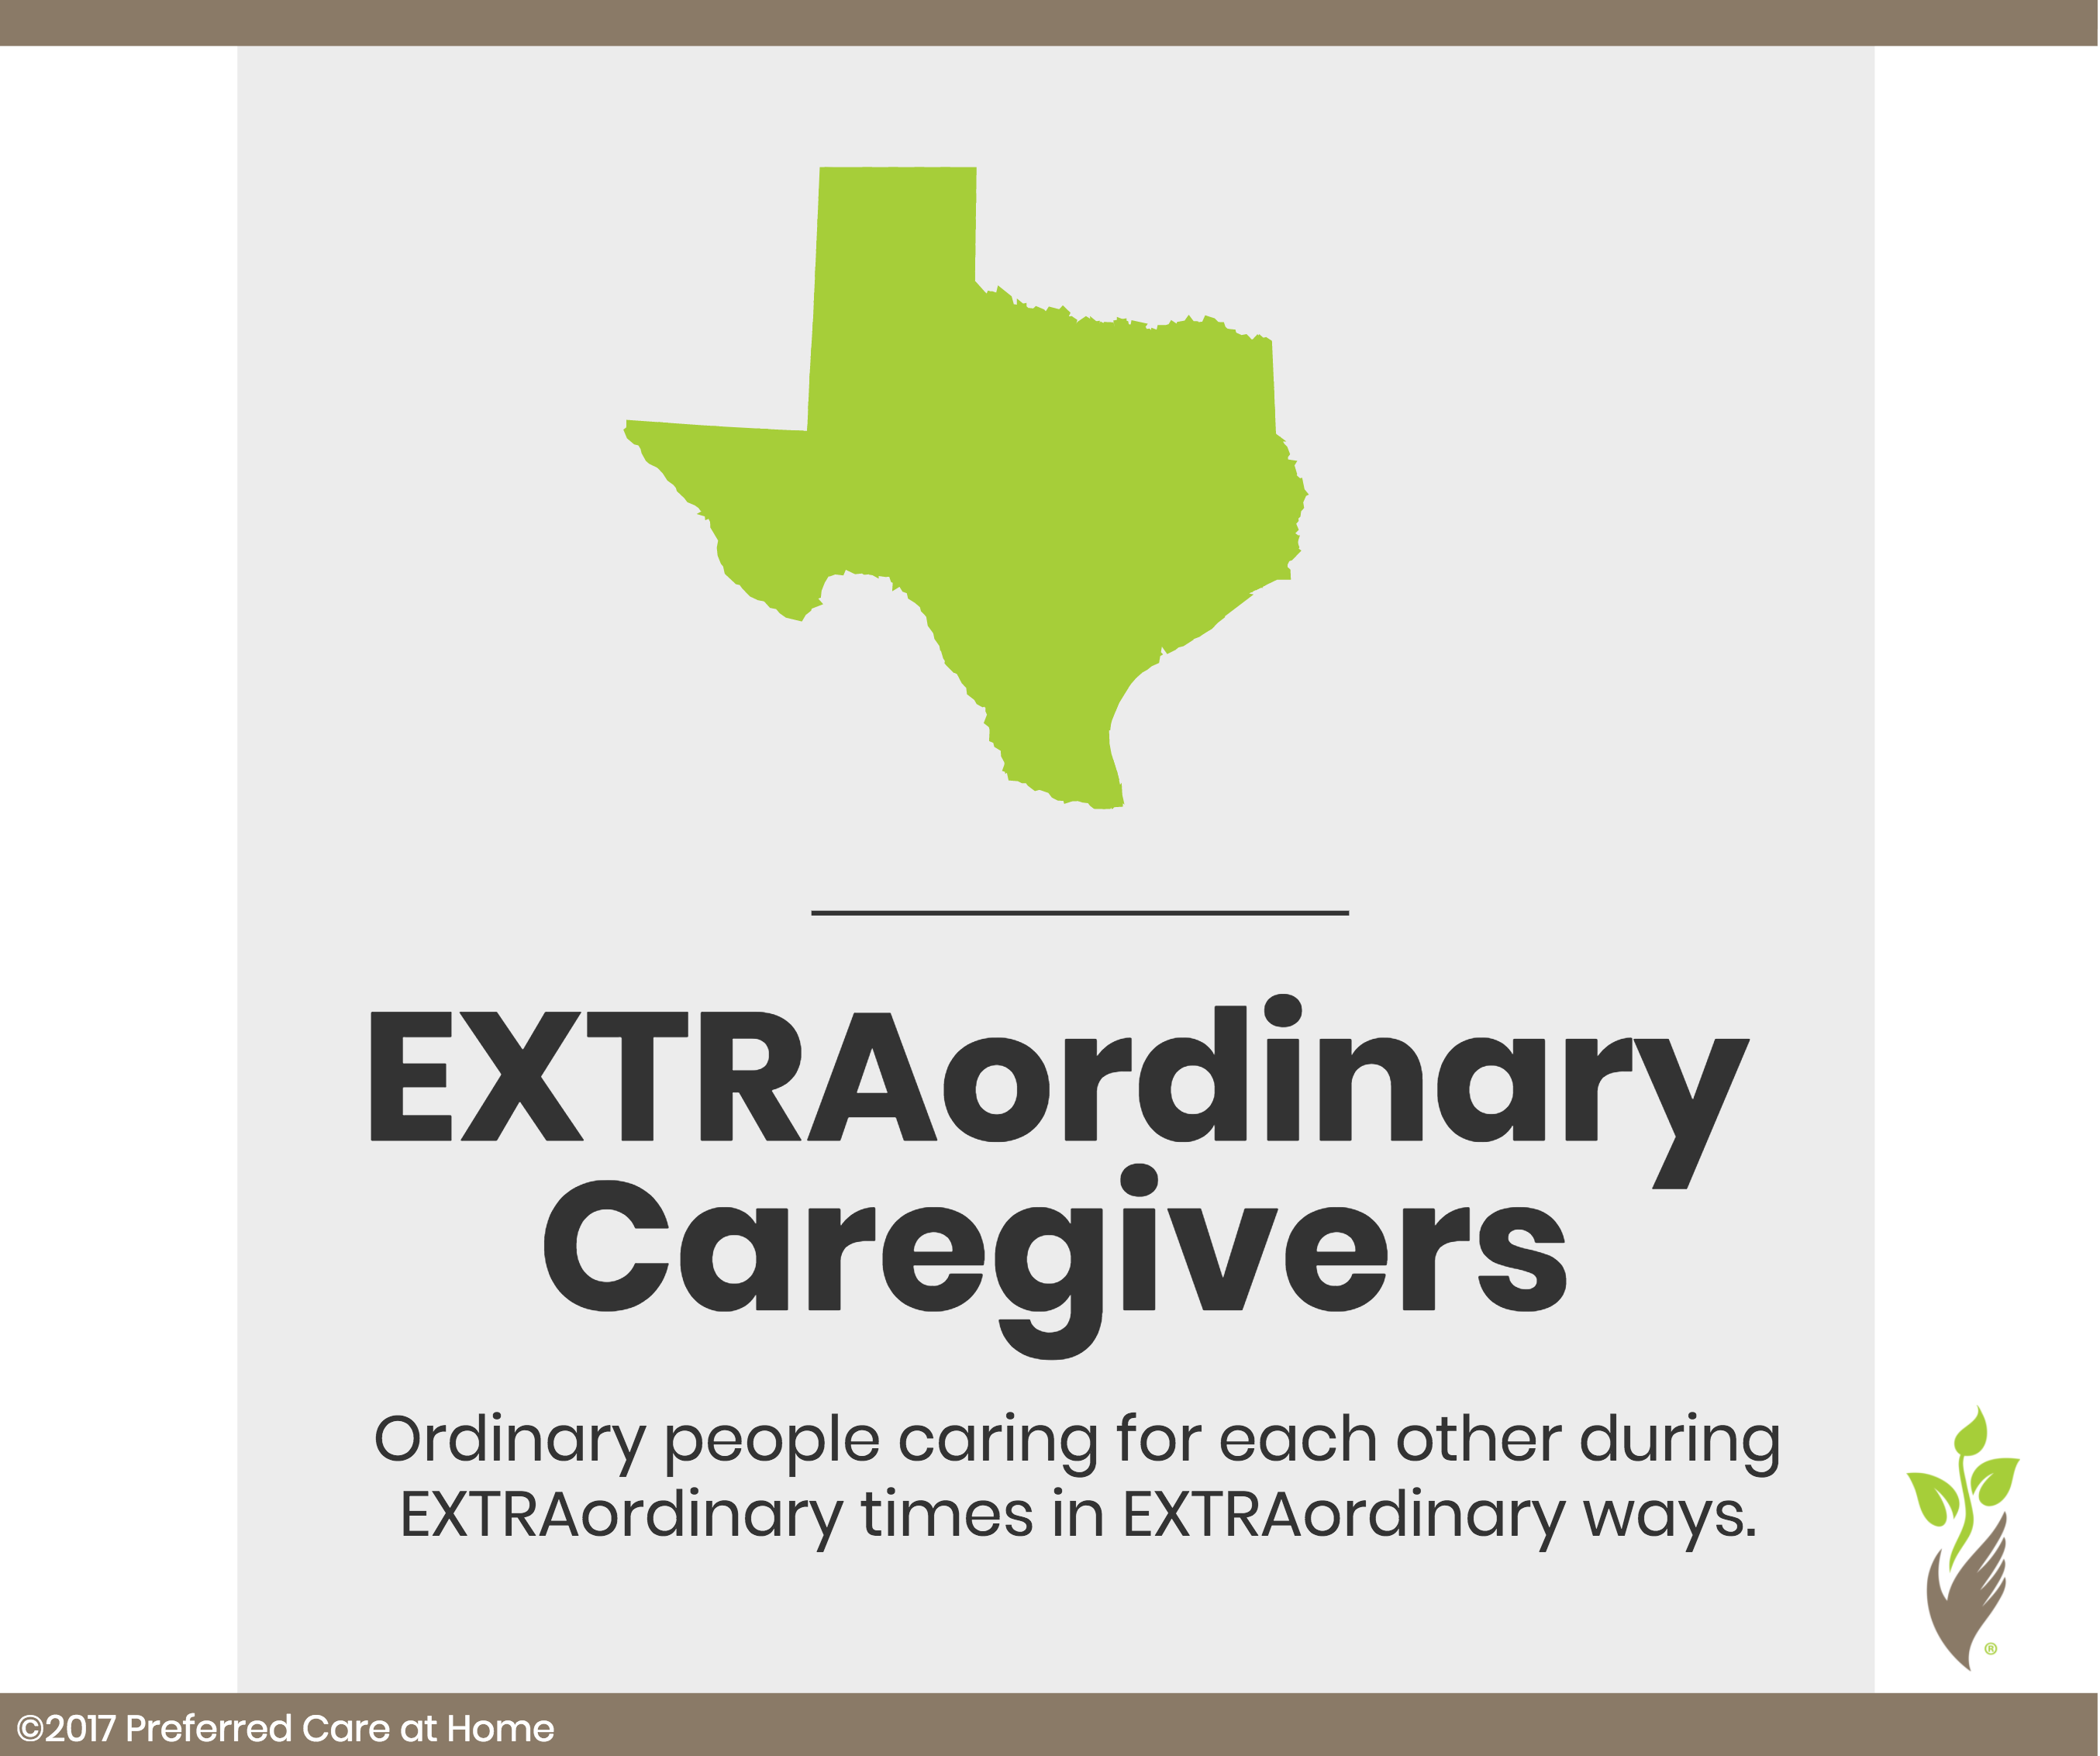 Extraordinary Caregivers in the Midst of Harvey